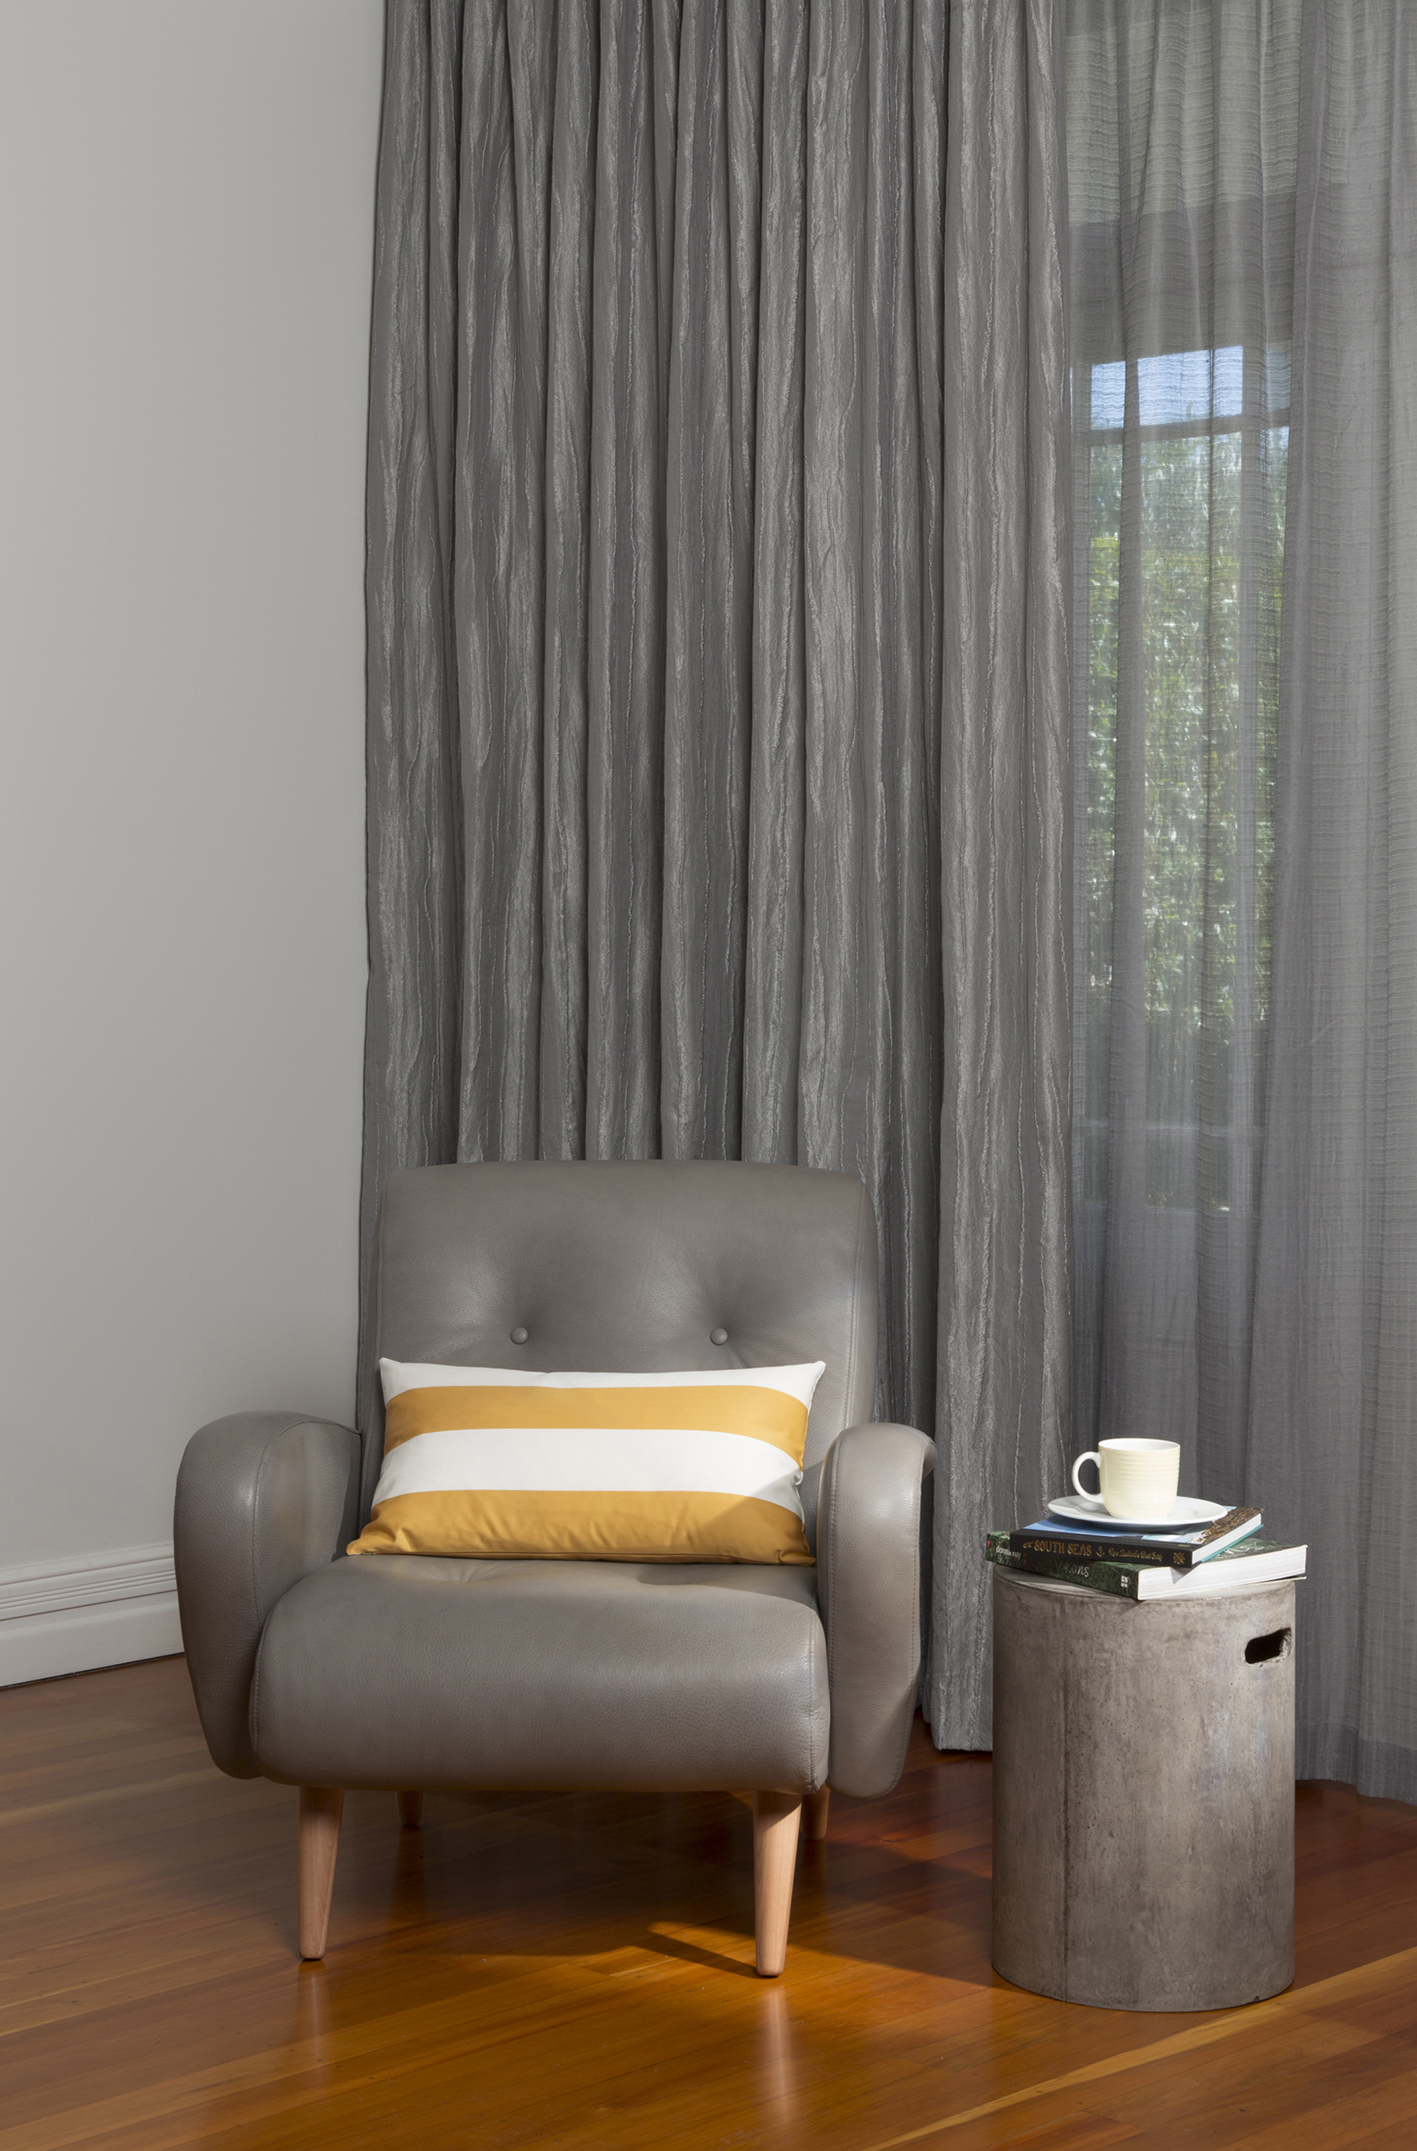 ... illusion of height in the room and achieve a consistent look all Curtains should be fitted at the same height and drop all the way down to the floor.